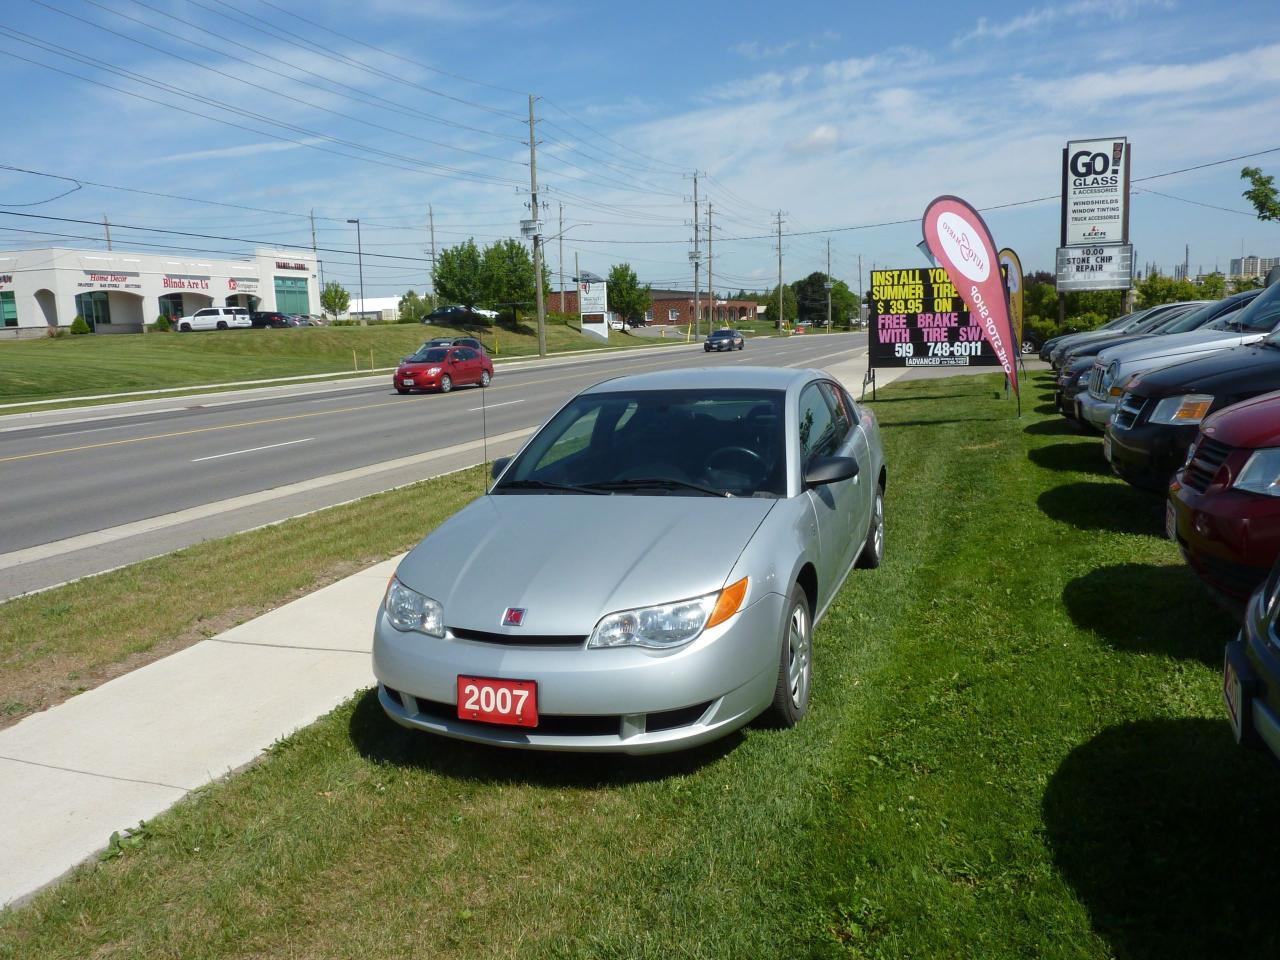 Used 2007 Saturn Ion ION.2 Midlevel for Sale in Kitchener, Ontario ...